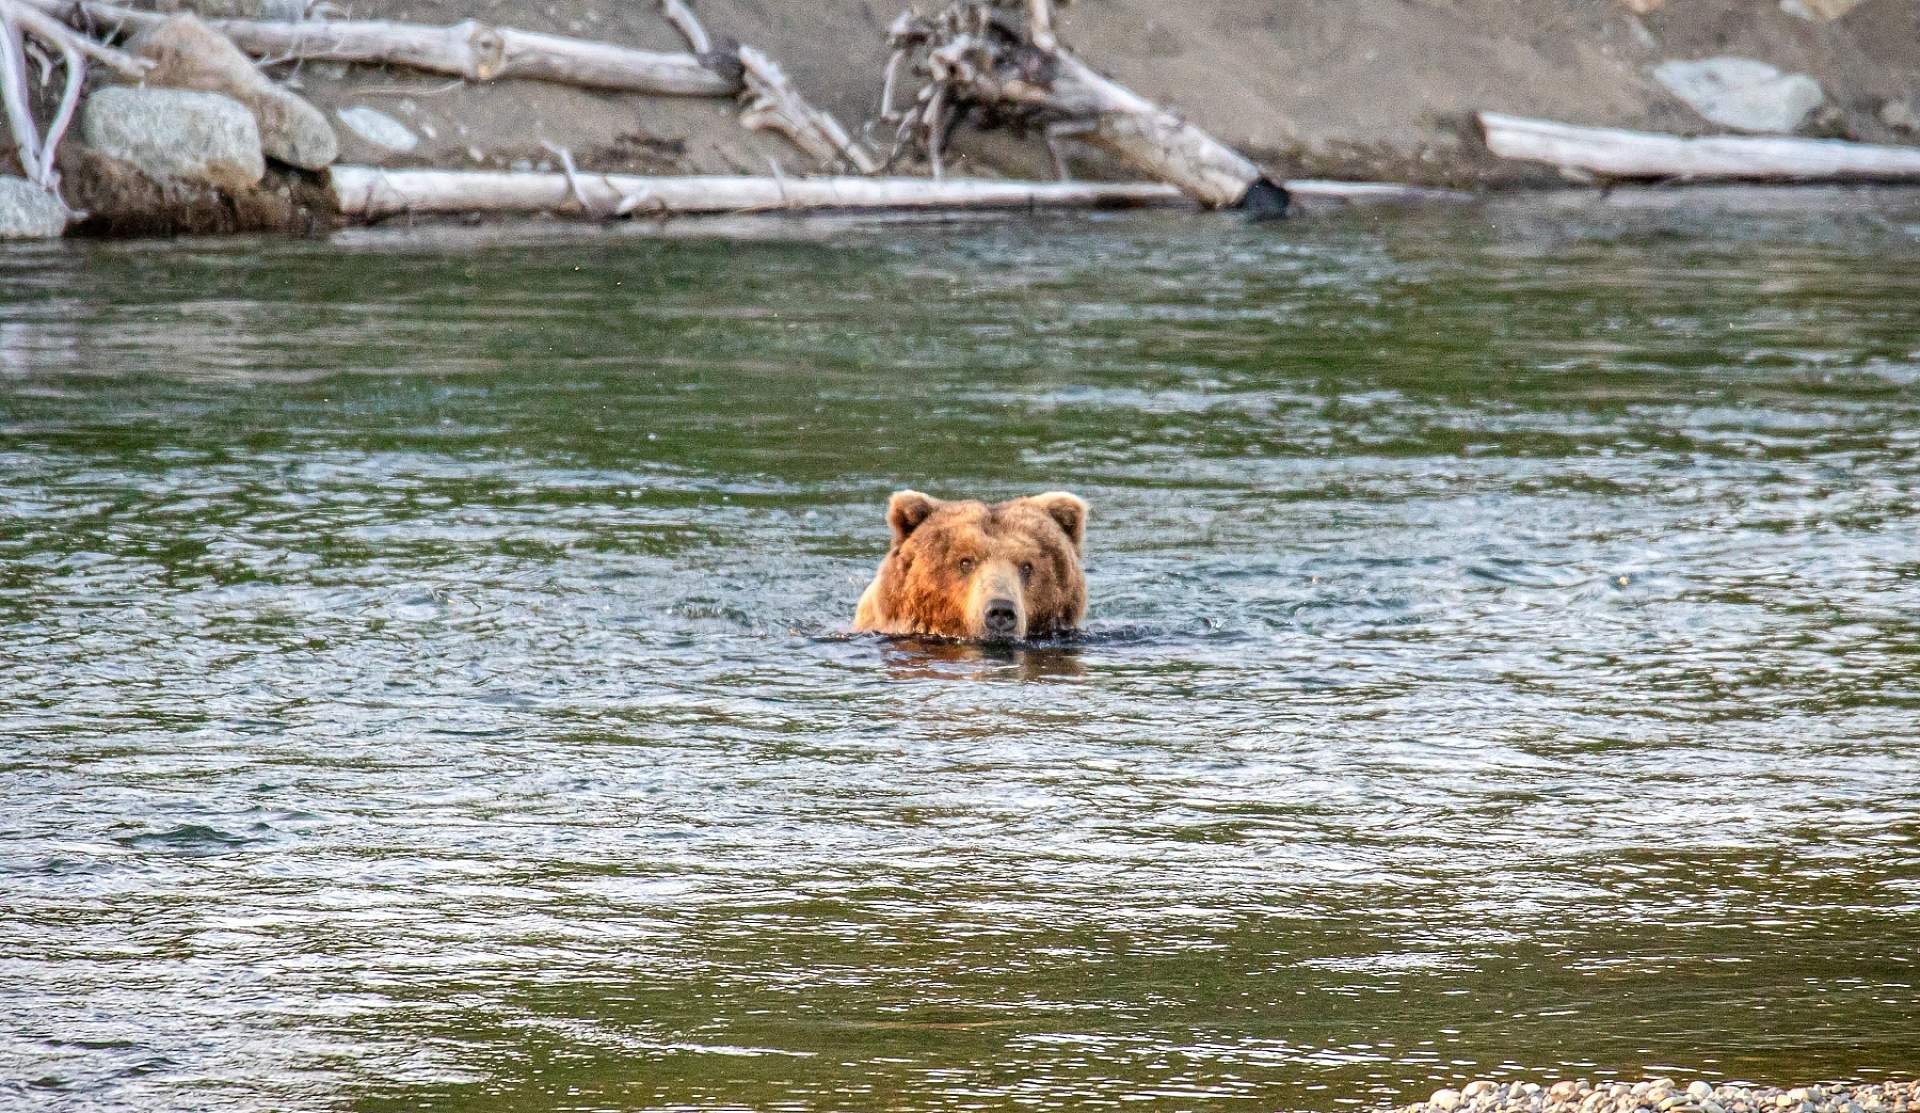 A bear peers out over the water in Katmai National Park